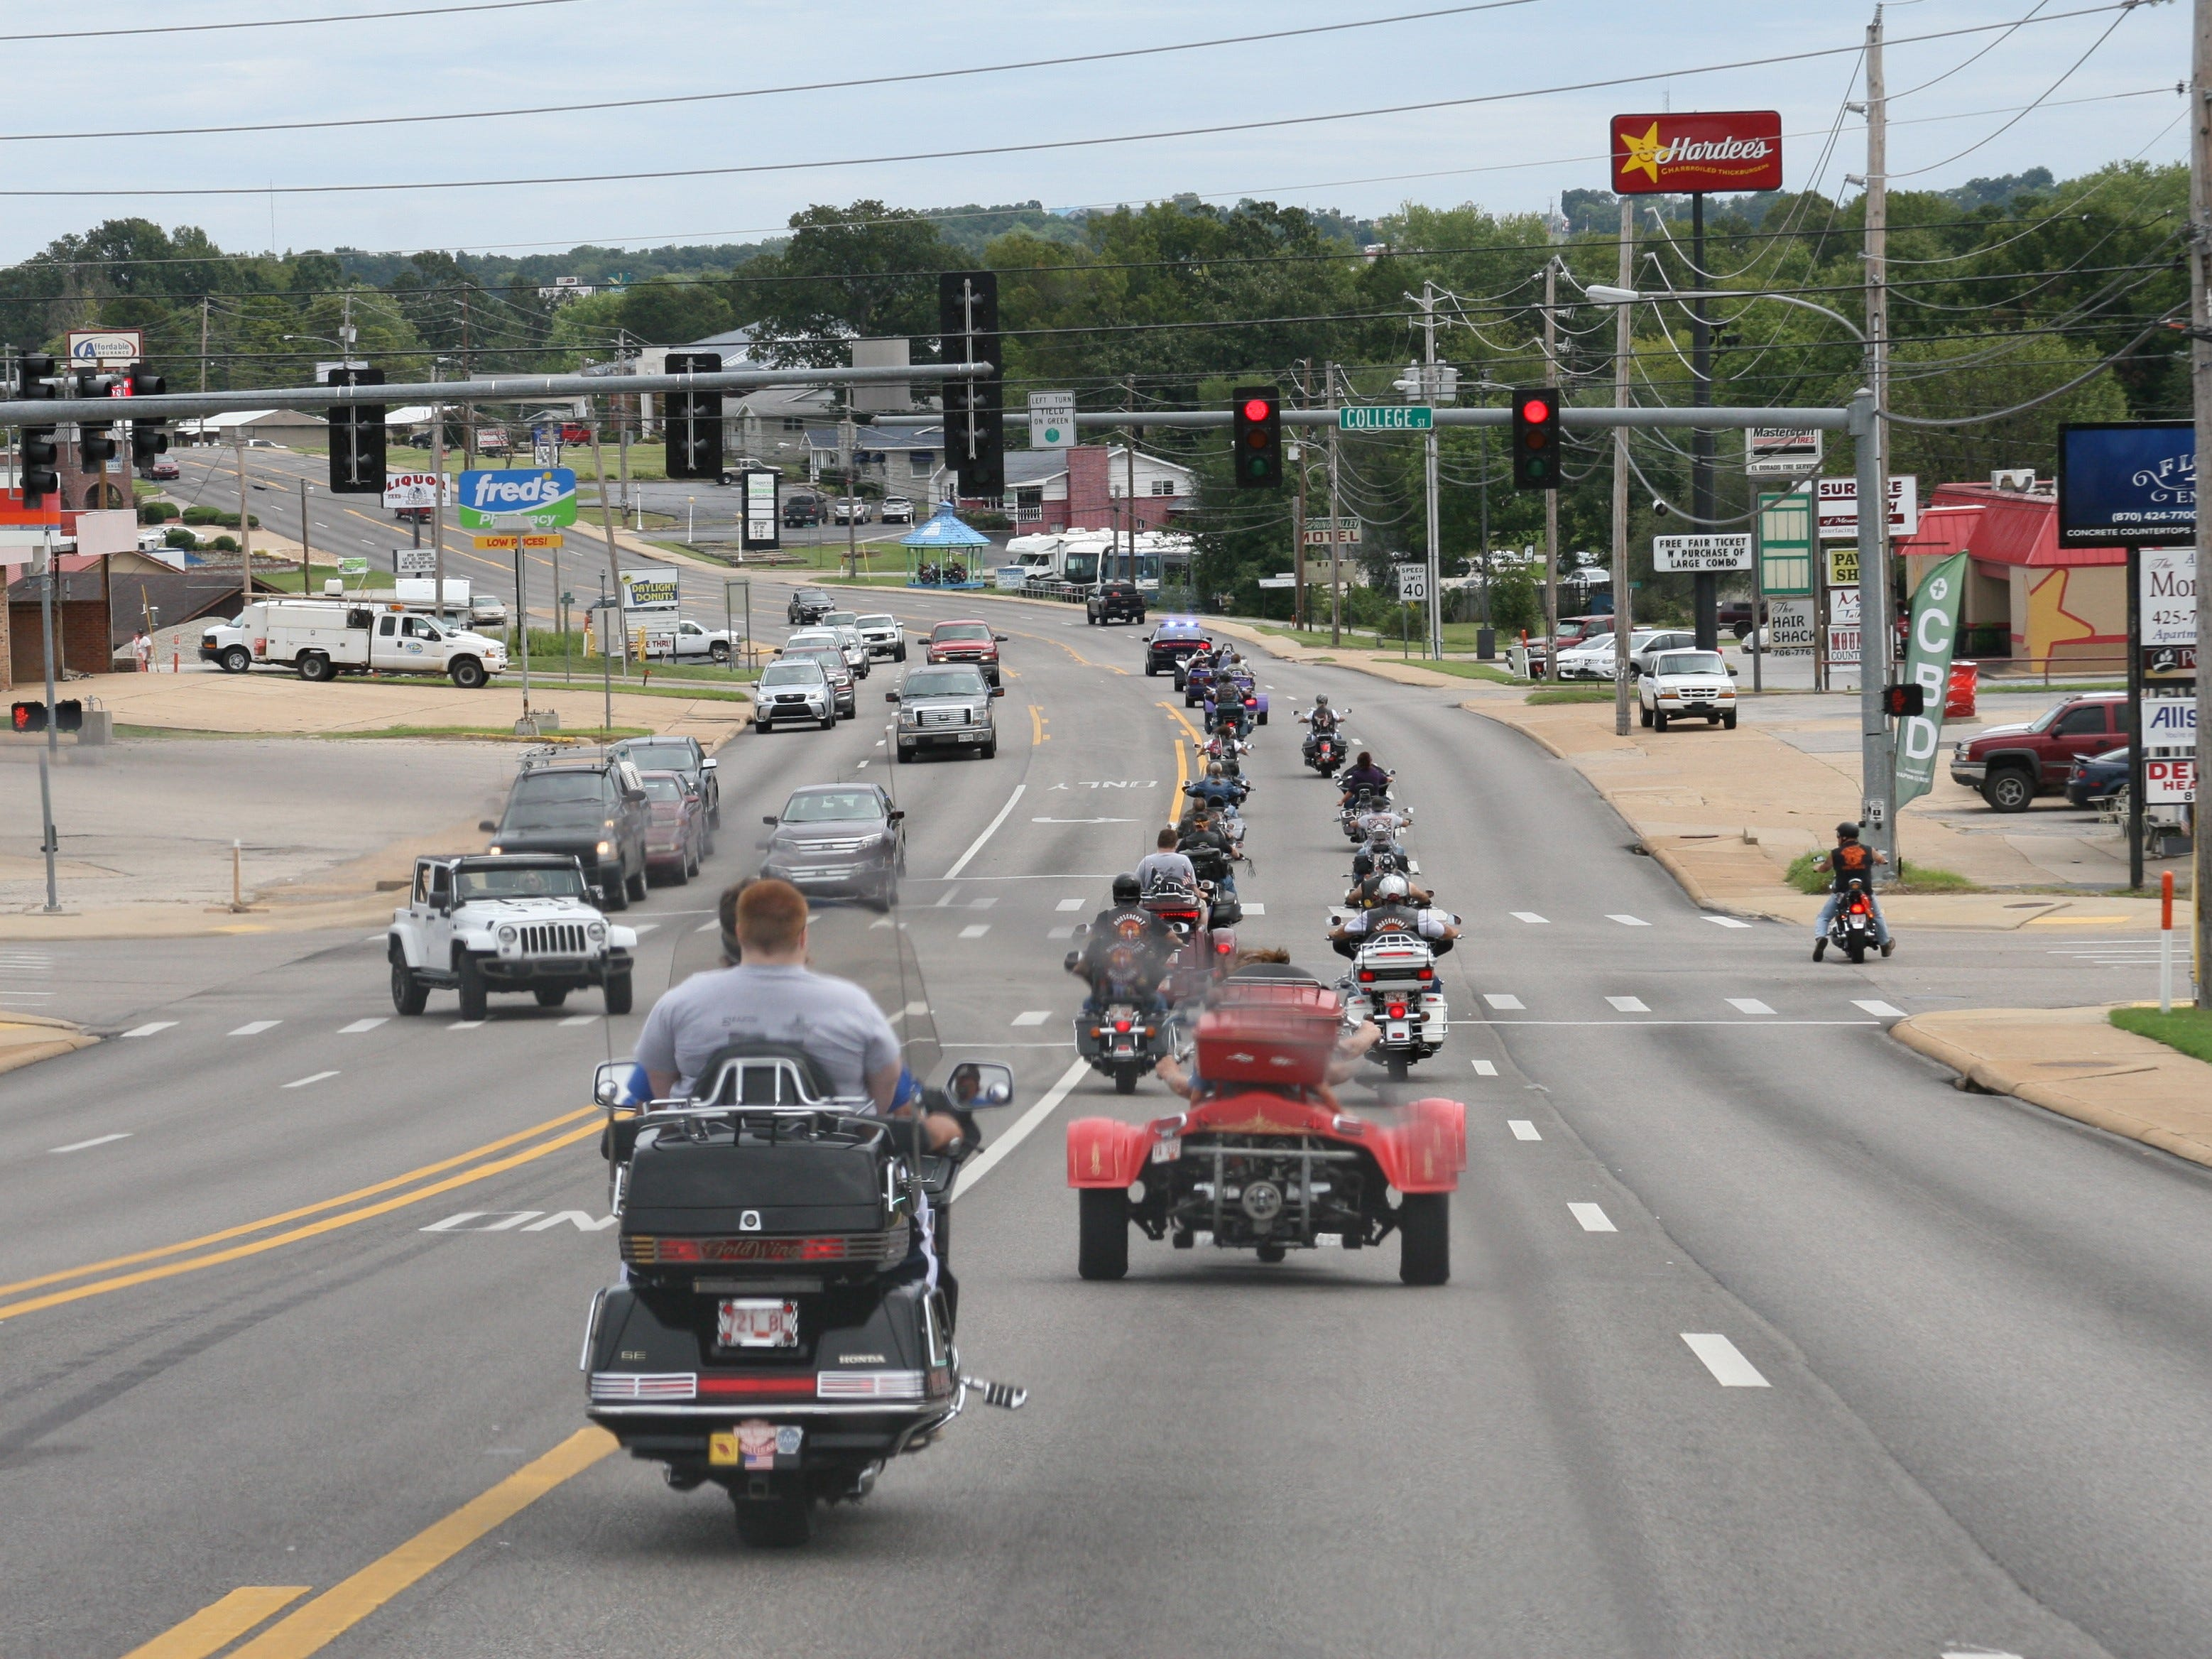 Approximately 30 motorcycles -- mostly Harleys, several trikes, a couple of tandem cycles and even a cycle with a sidecar – participated in community ride on Wednesday for 94-year-old Dora Uelmann. Around 40 individual riders and others with club affiliations received a police escort through town as part of a dream-filling event for Uelmann.